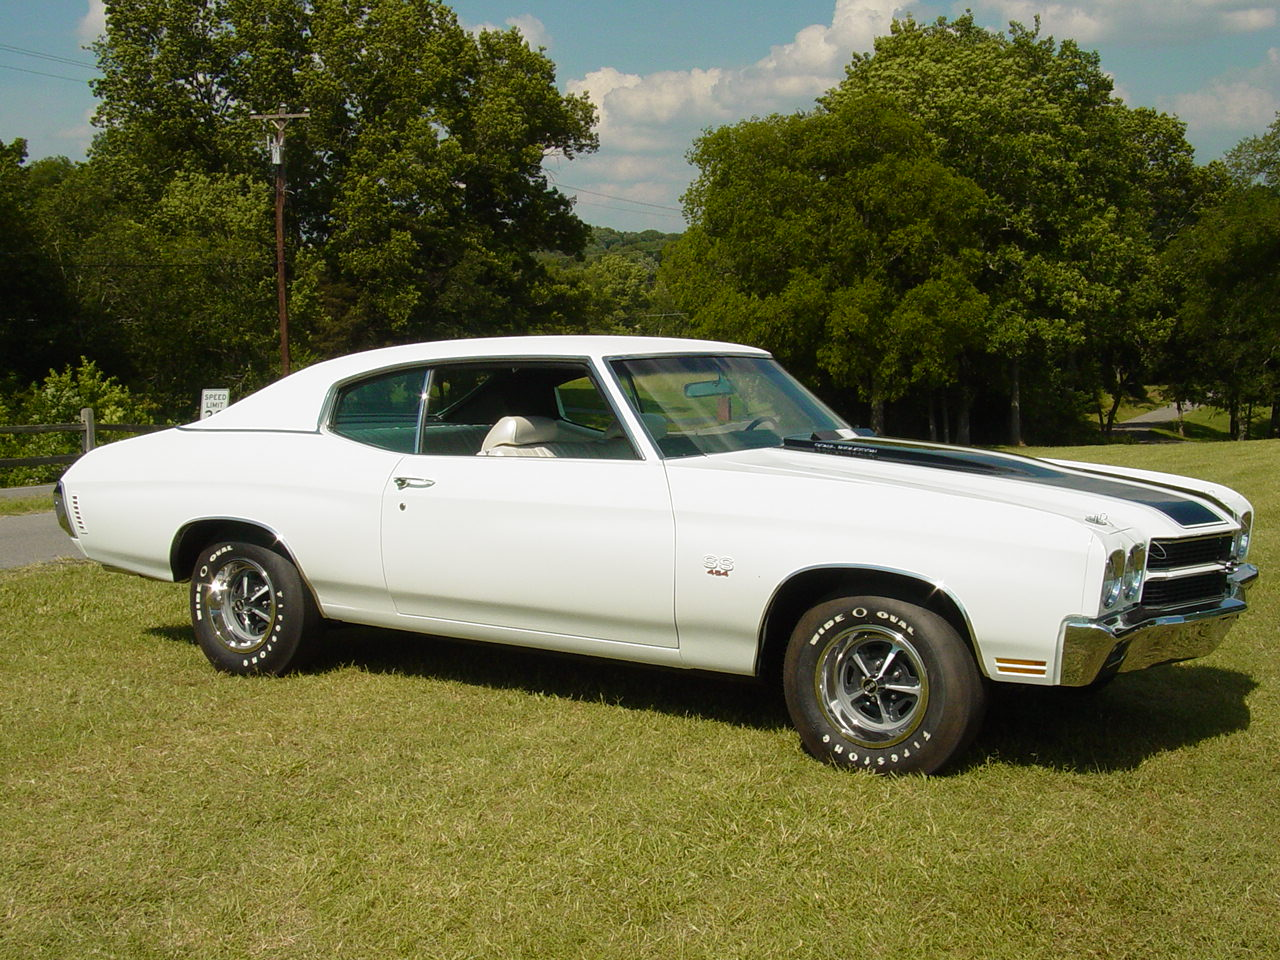 All Chevy 1970 chevrolet chevelle ss 454 : Top 10 fastest muscle cars   AmcarGuide.com - American muscle car ...